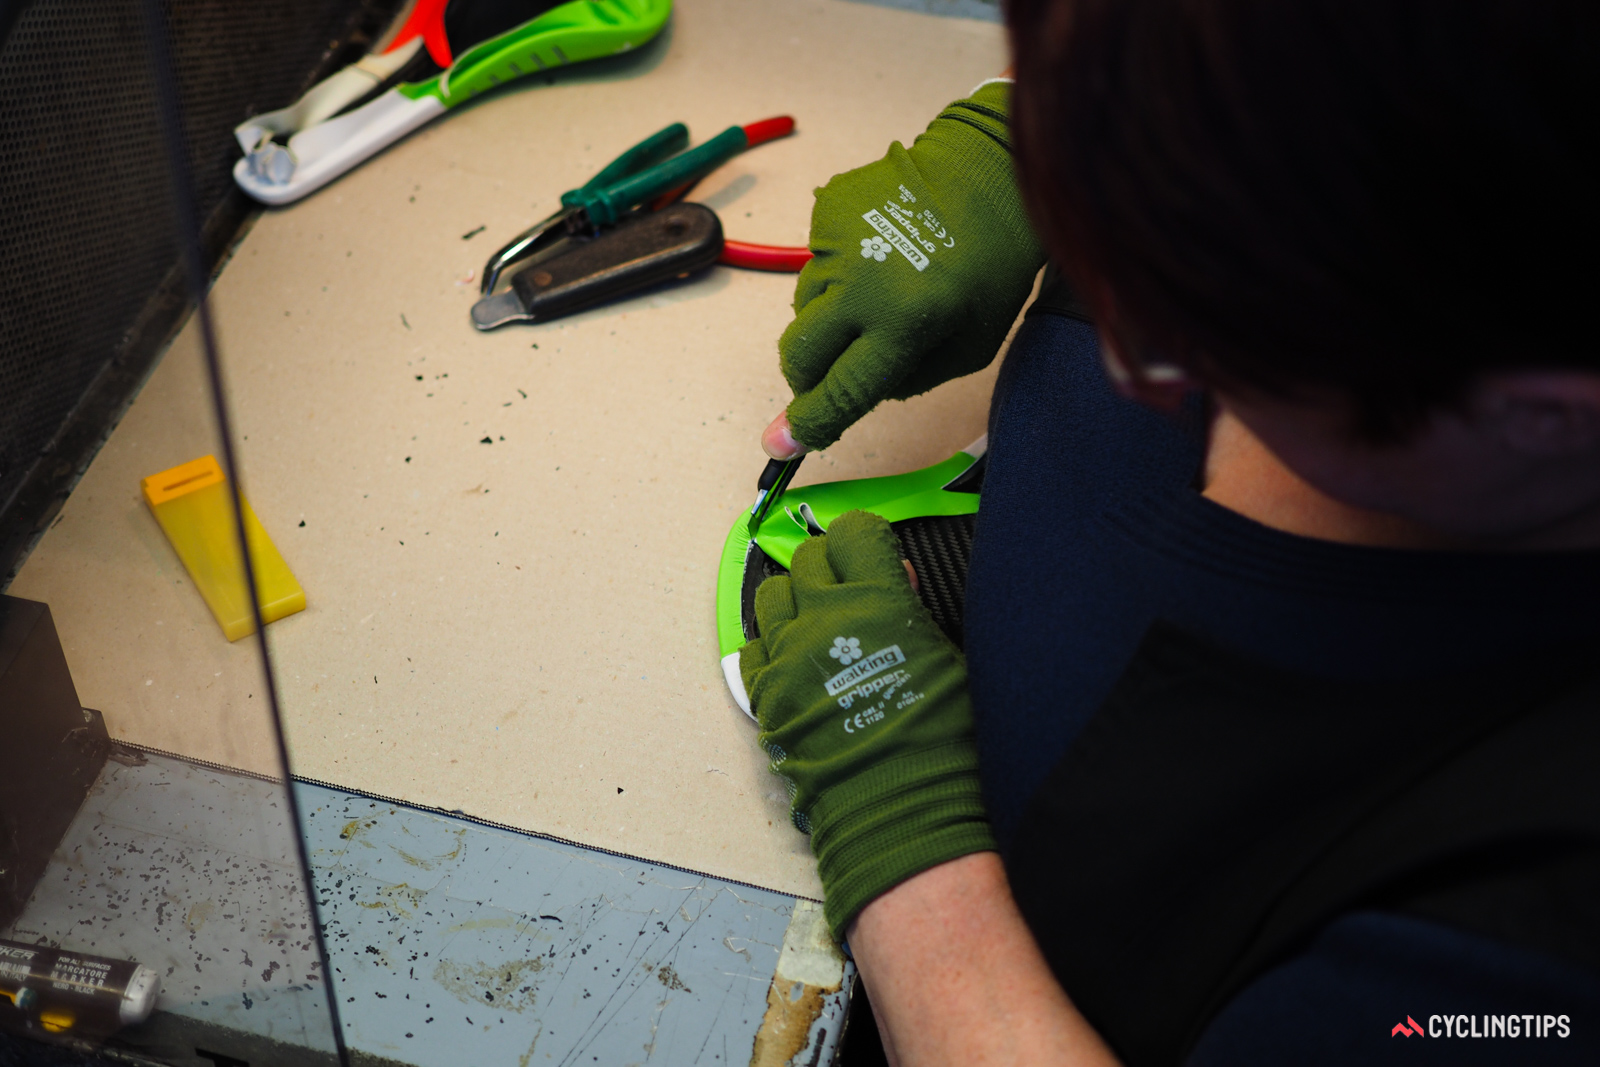 Excess material is trimmed by hand.